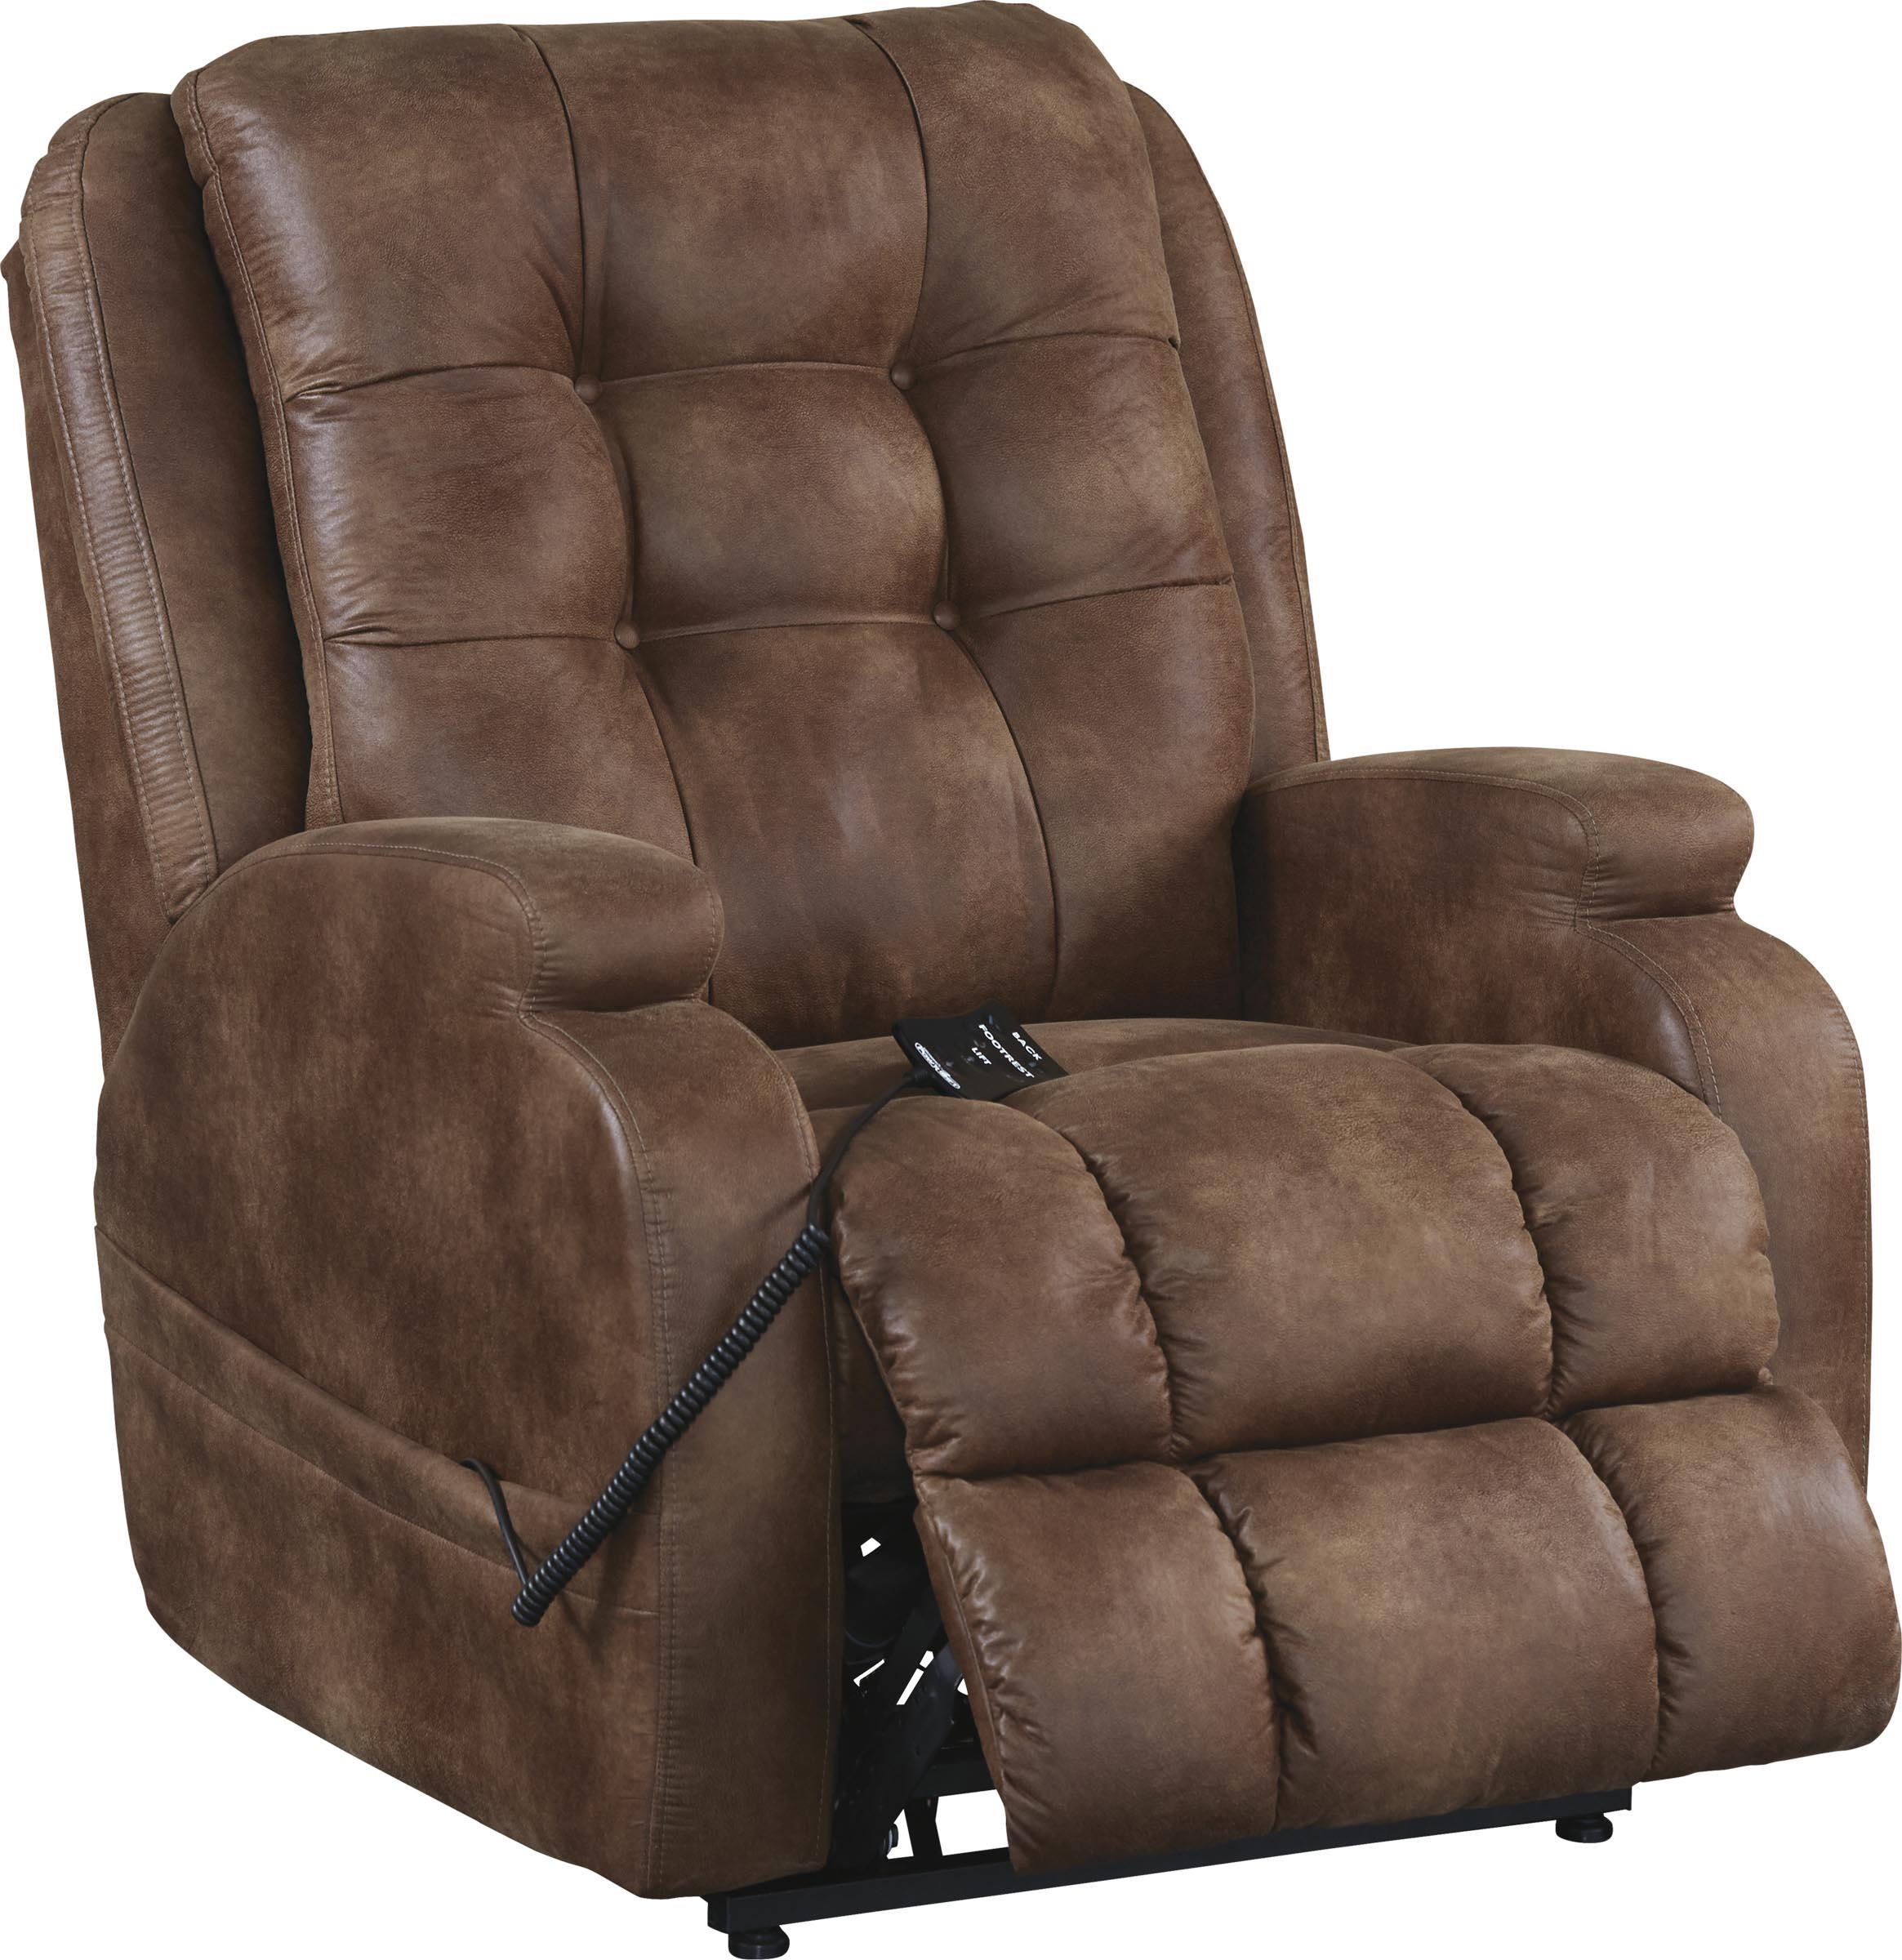 lay flat recliner chairs chicco polly magic highchair toys r us catnapper motion and recliners jenson power lift